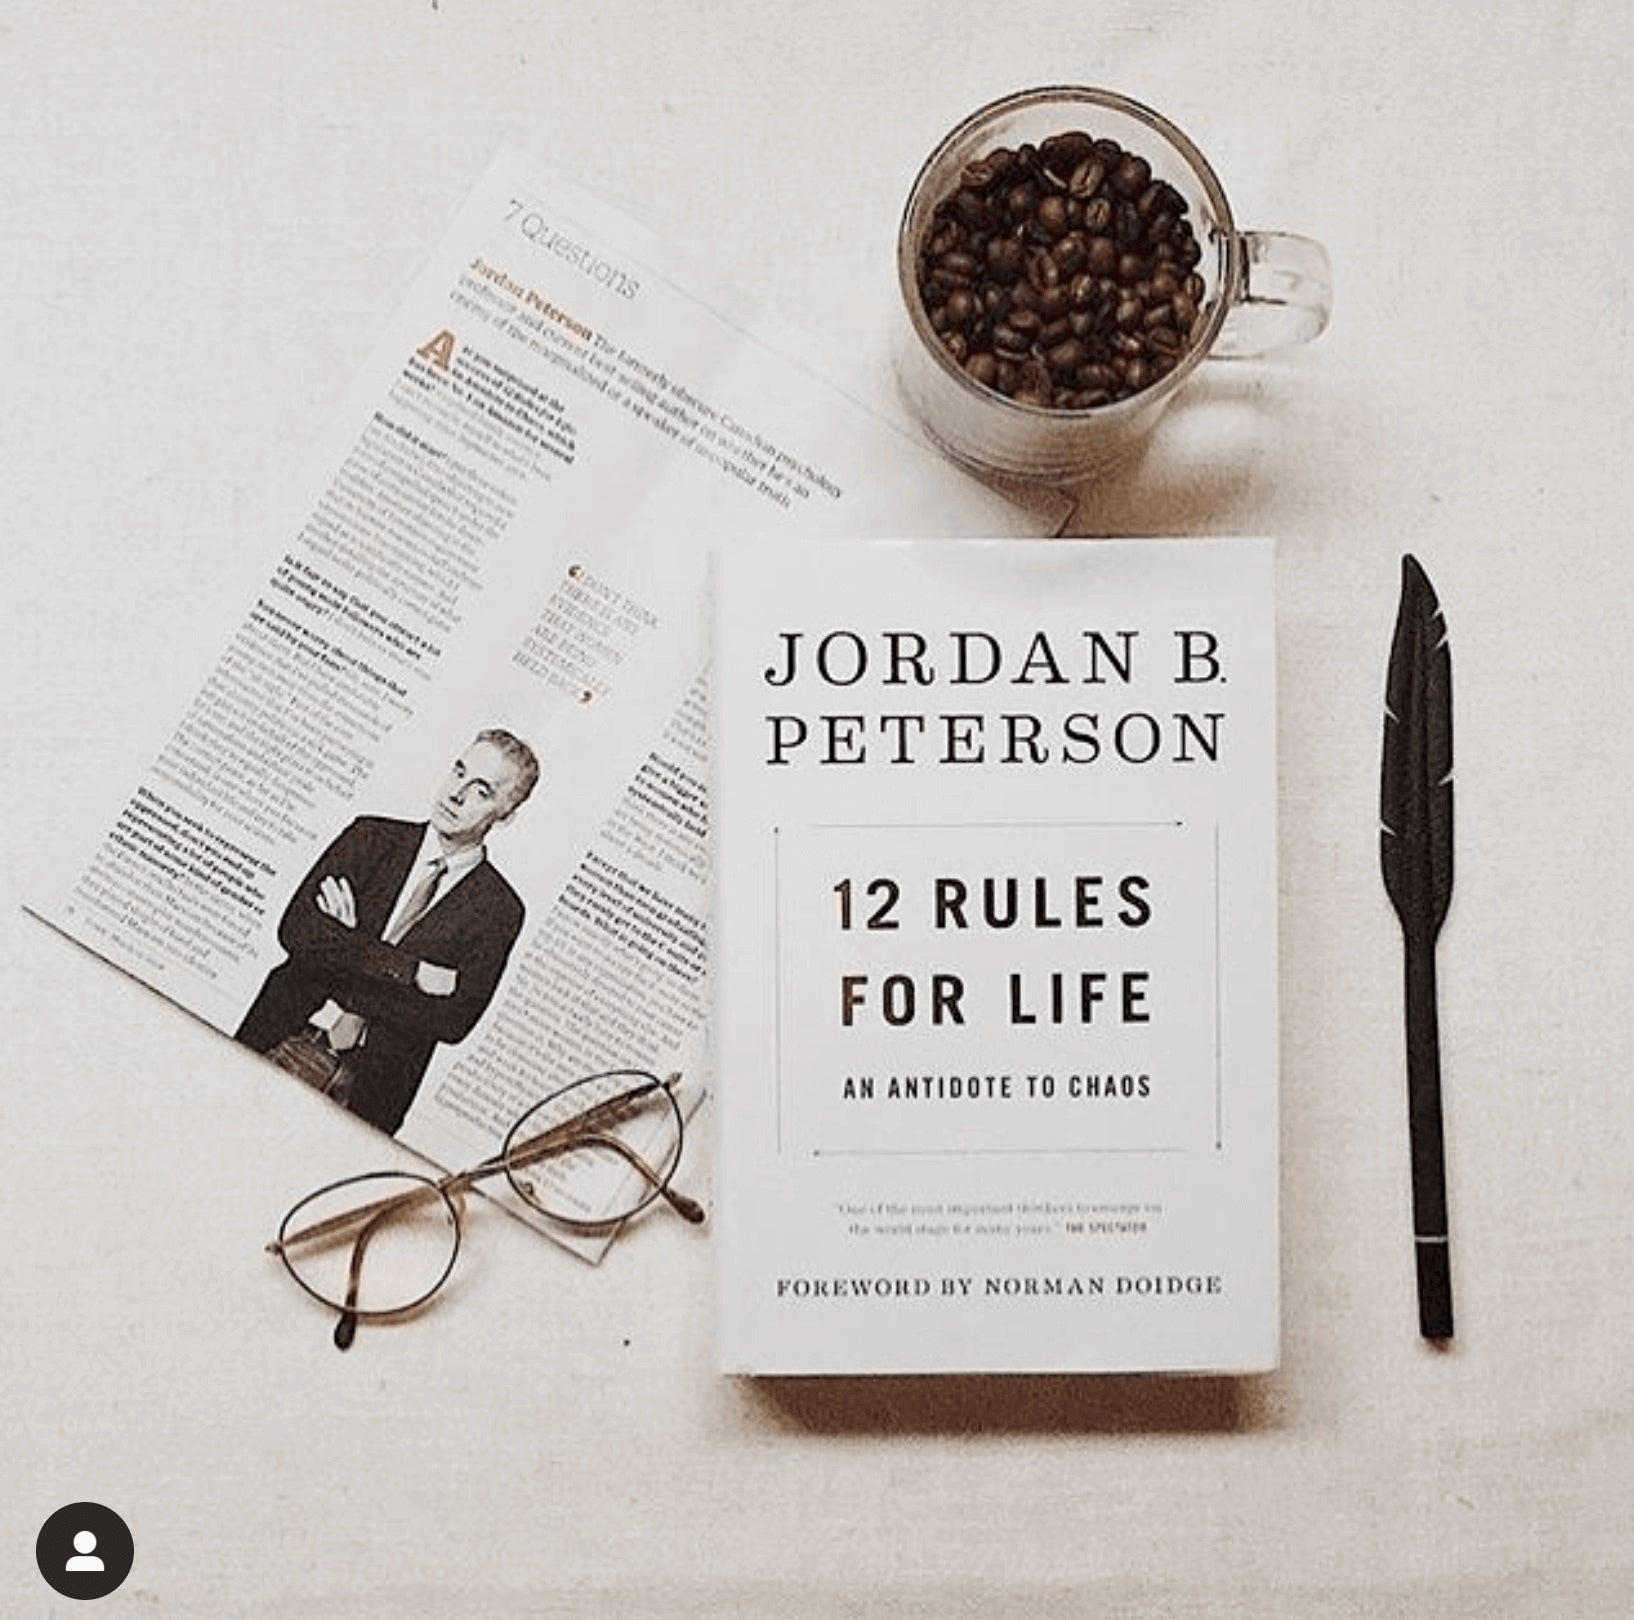 Jordan Peterson: 12 rules for life